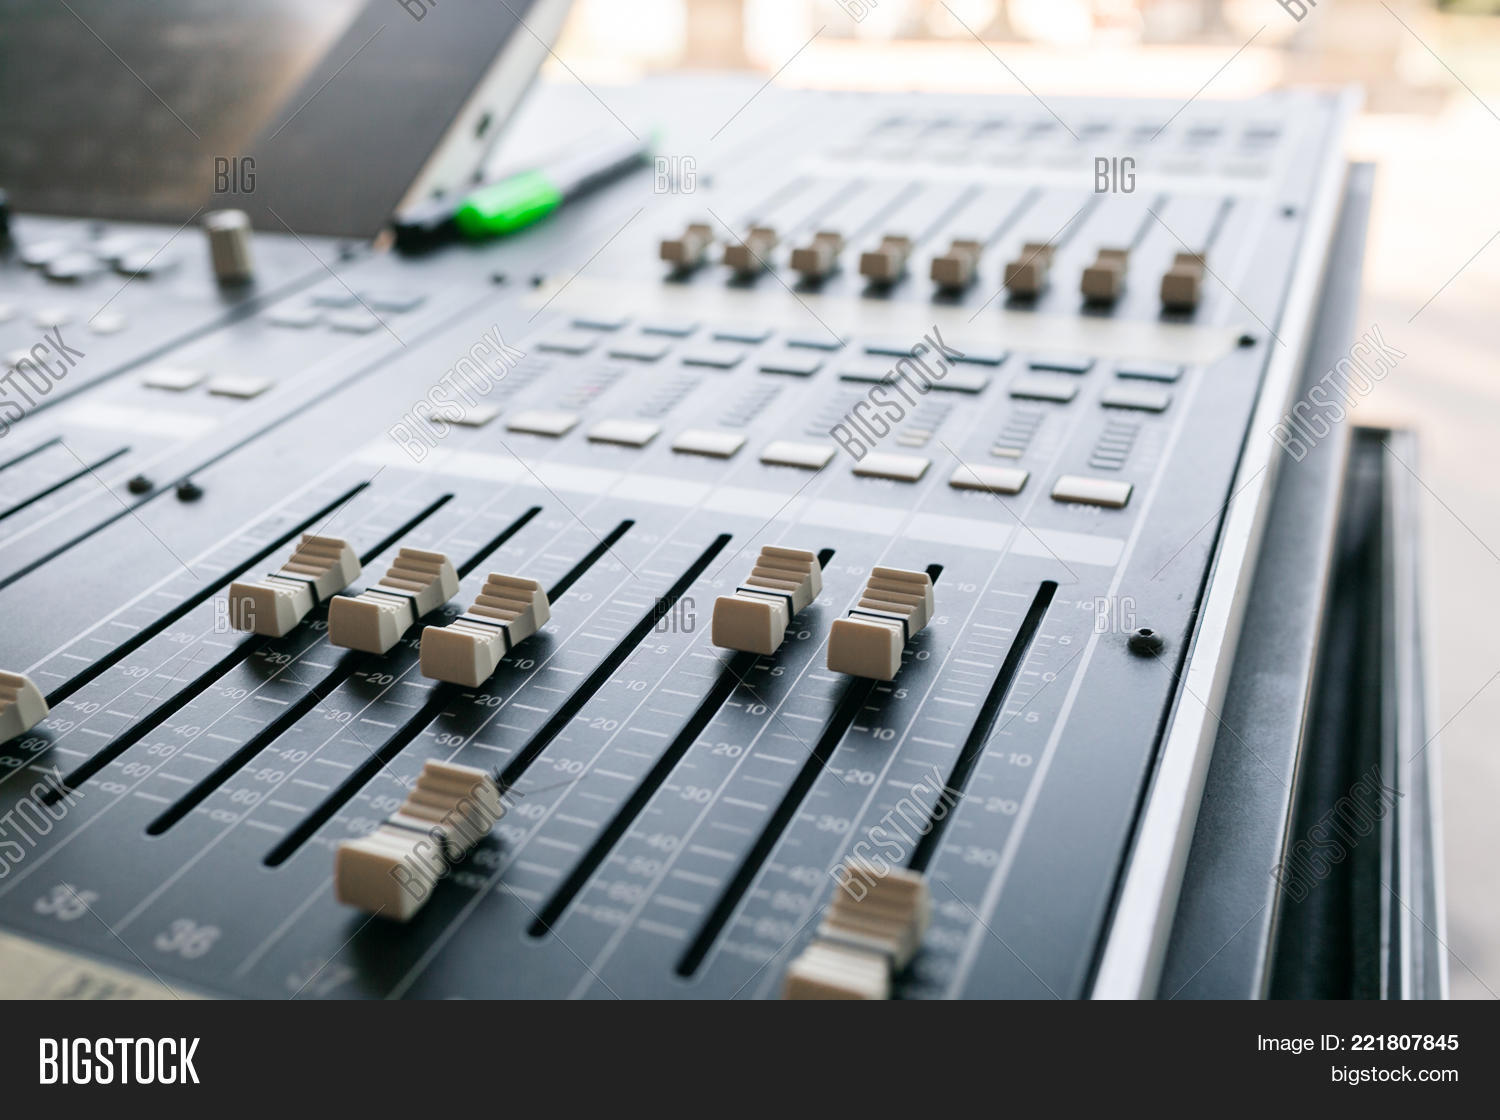 Music Mixer Equalizer Image & Photo (Free Trial) | Bigstock